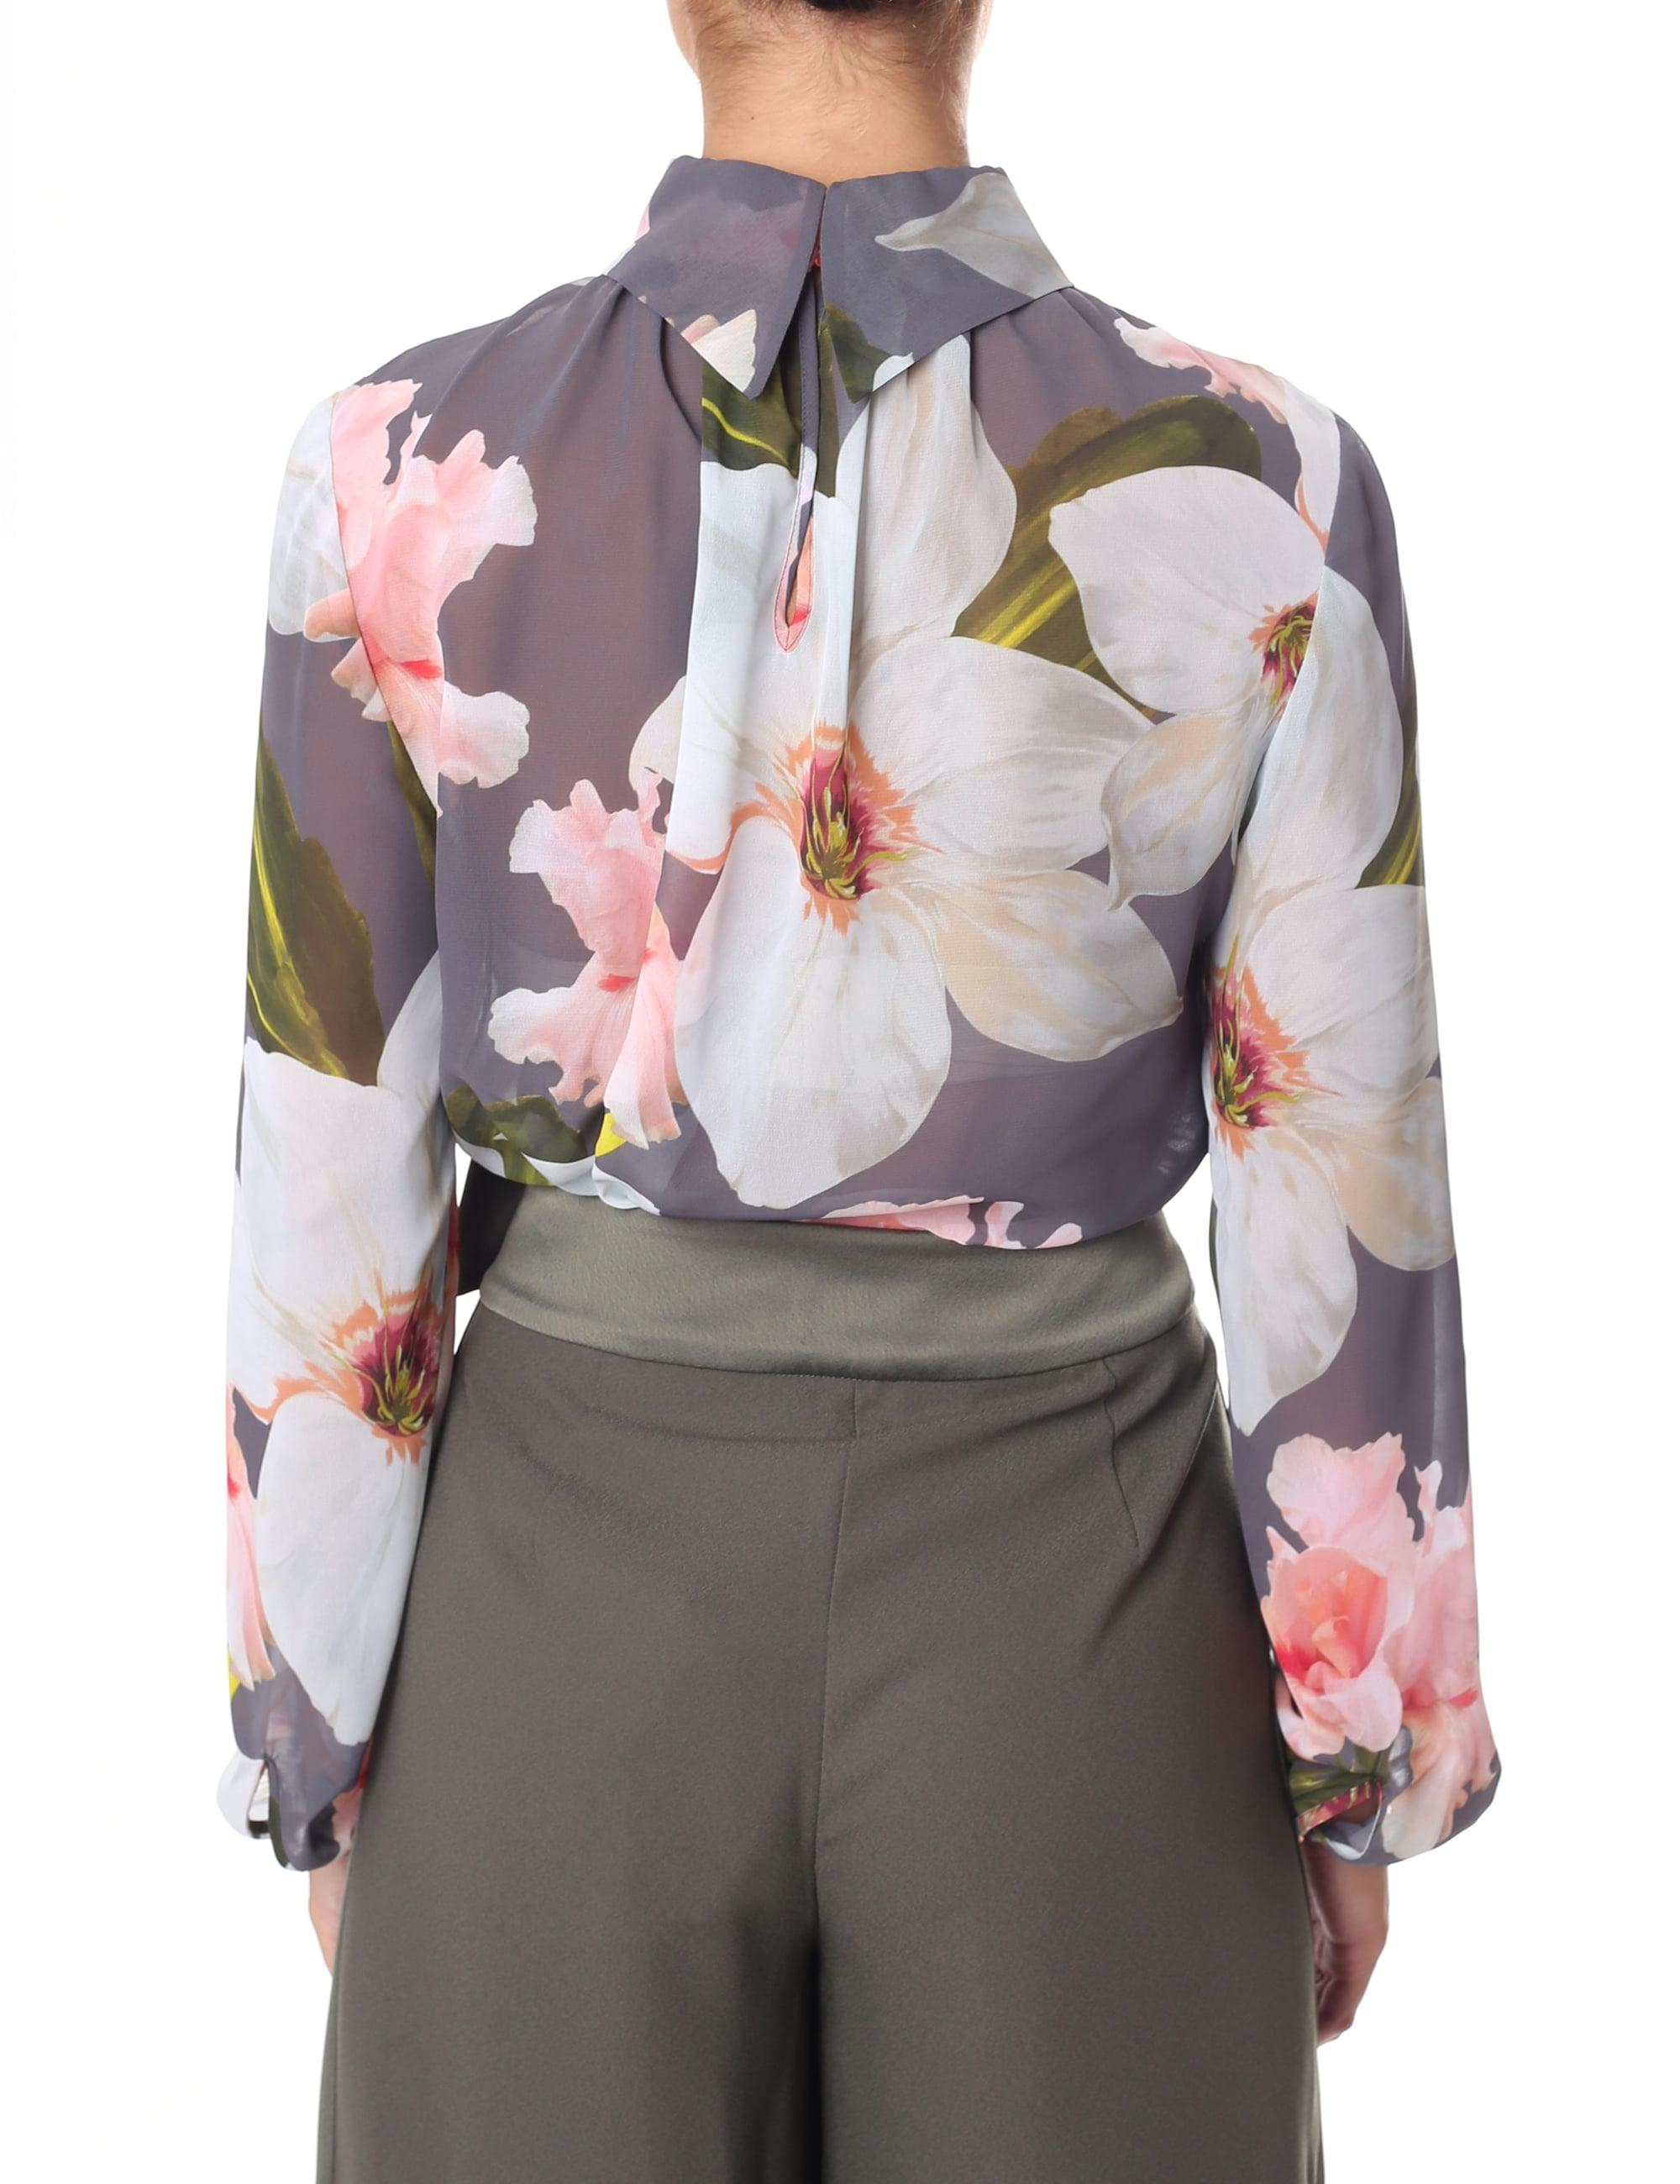 6765b09b6af6 Ted Baker Tily Chatsworth Bloom Ruched Blouse in Gray - Lyst